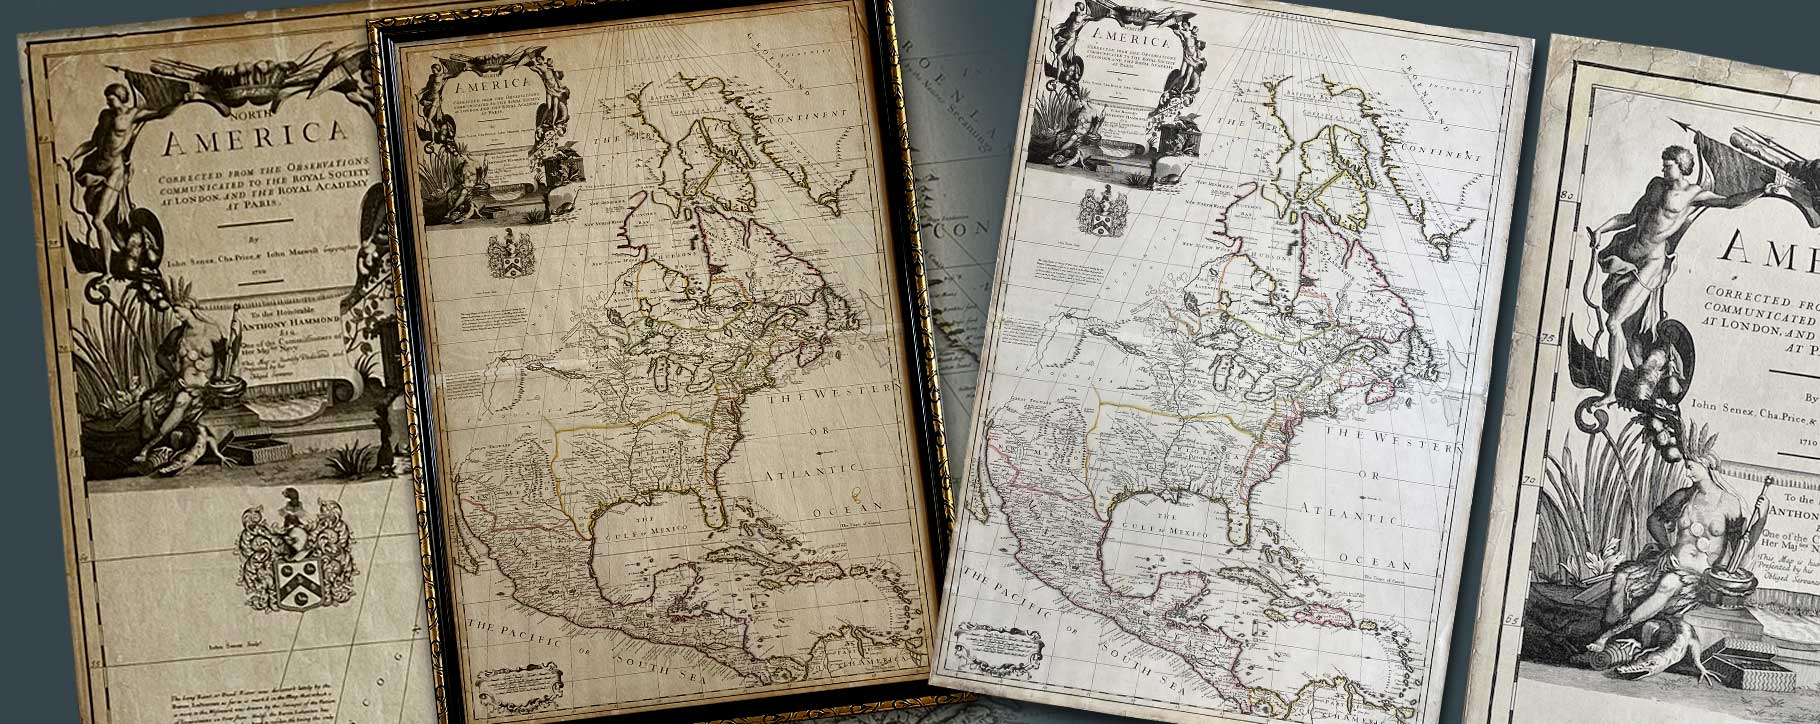 Americas map before and after cartography restoration